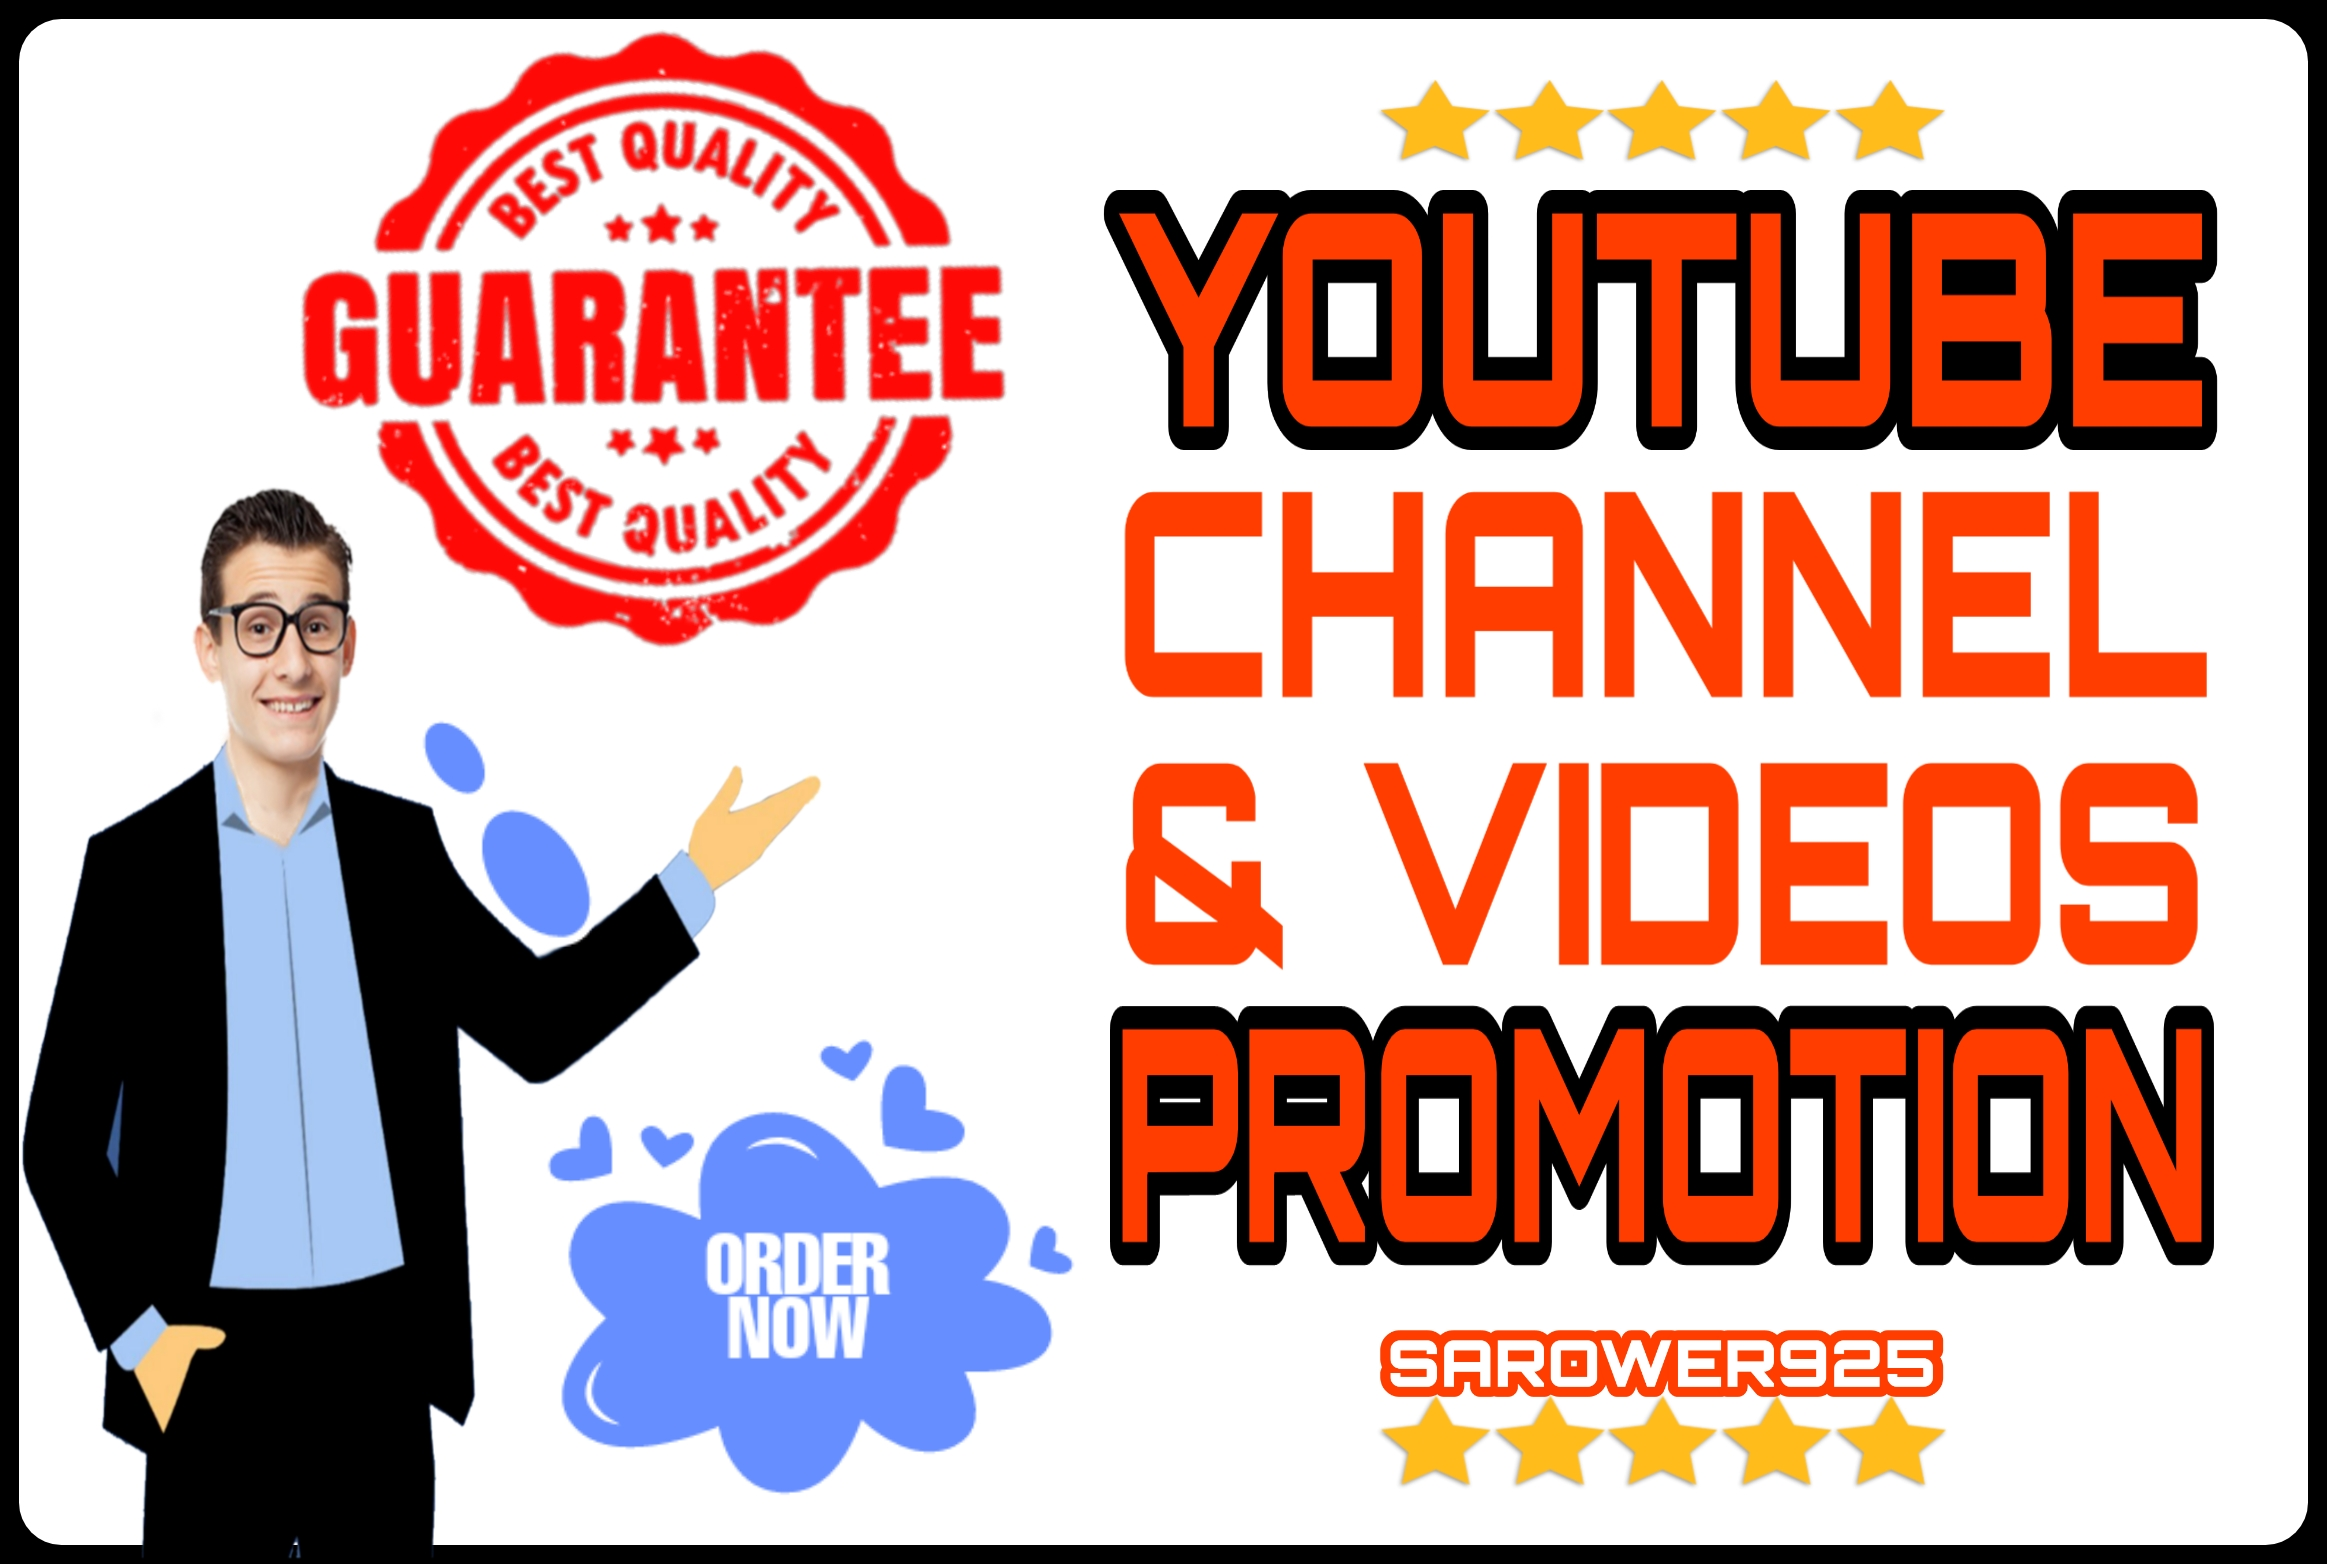 Boost your youtube videos & popularity in safely